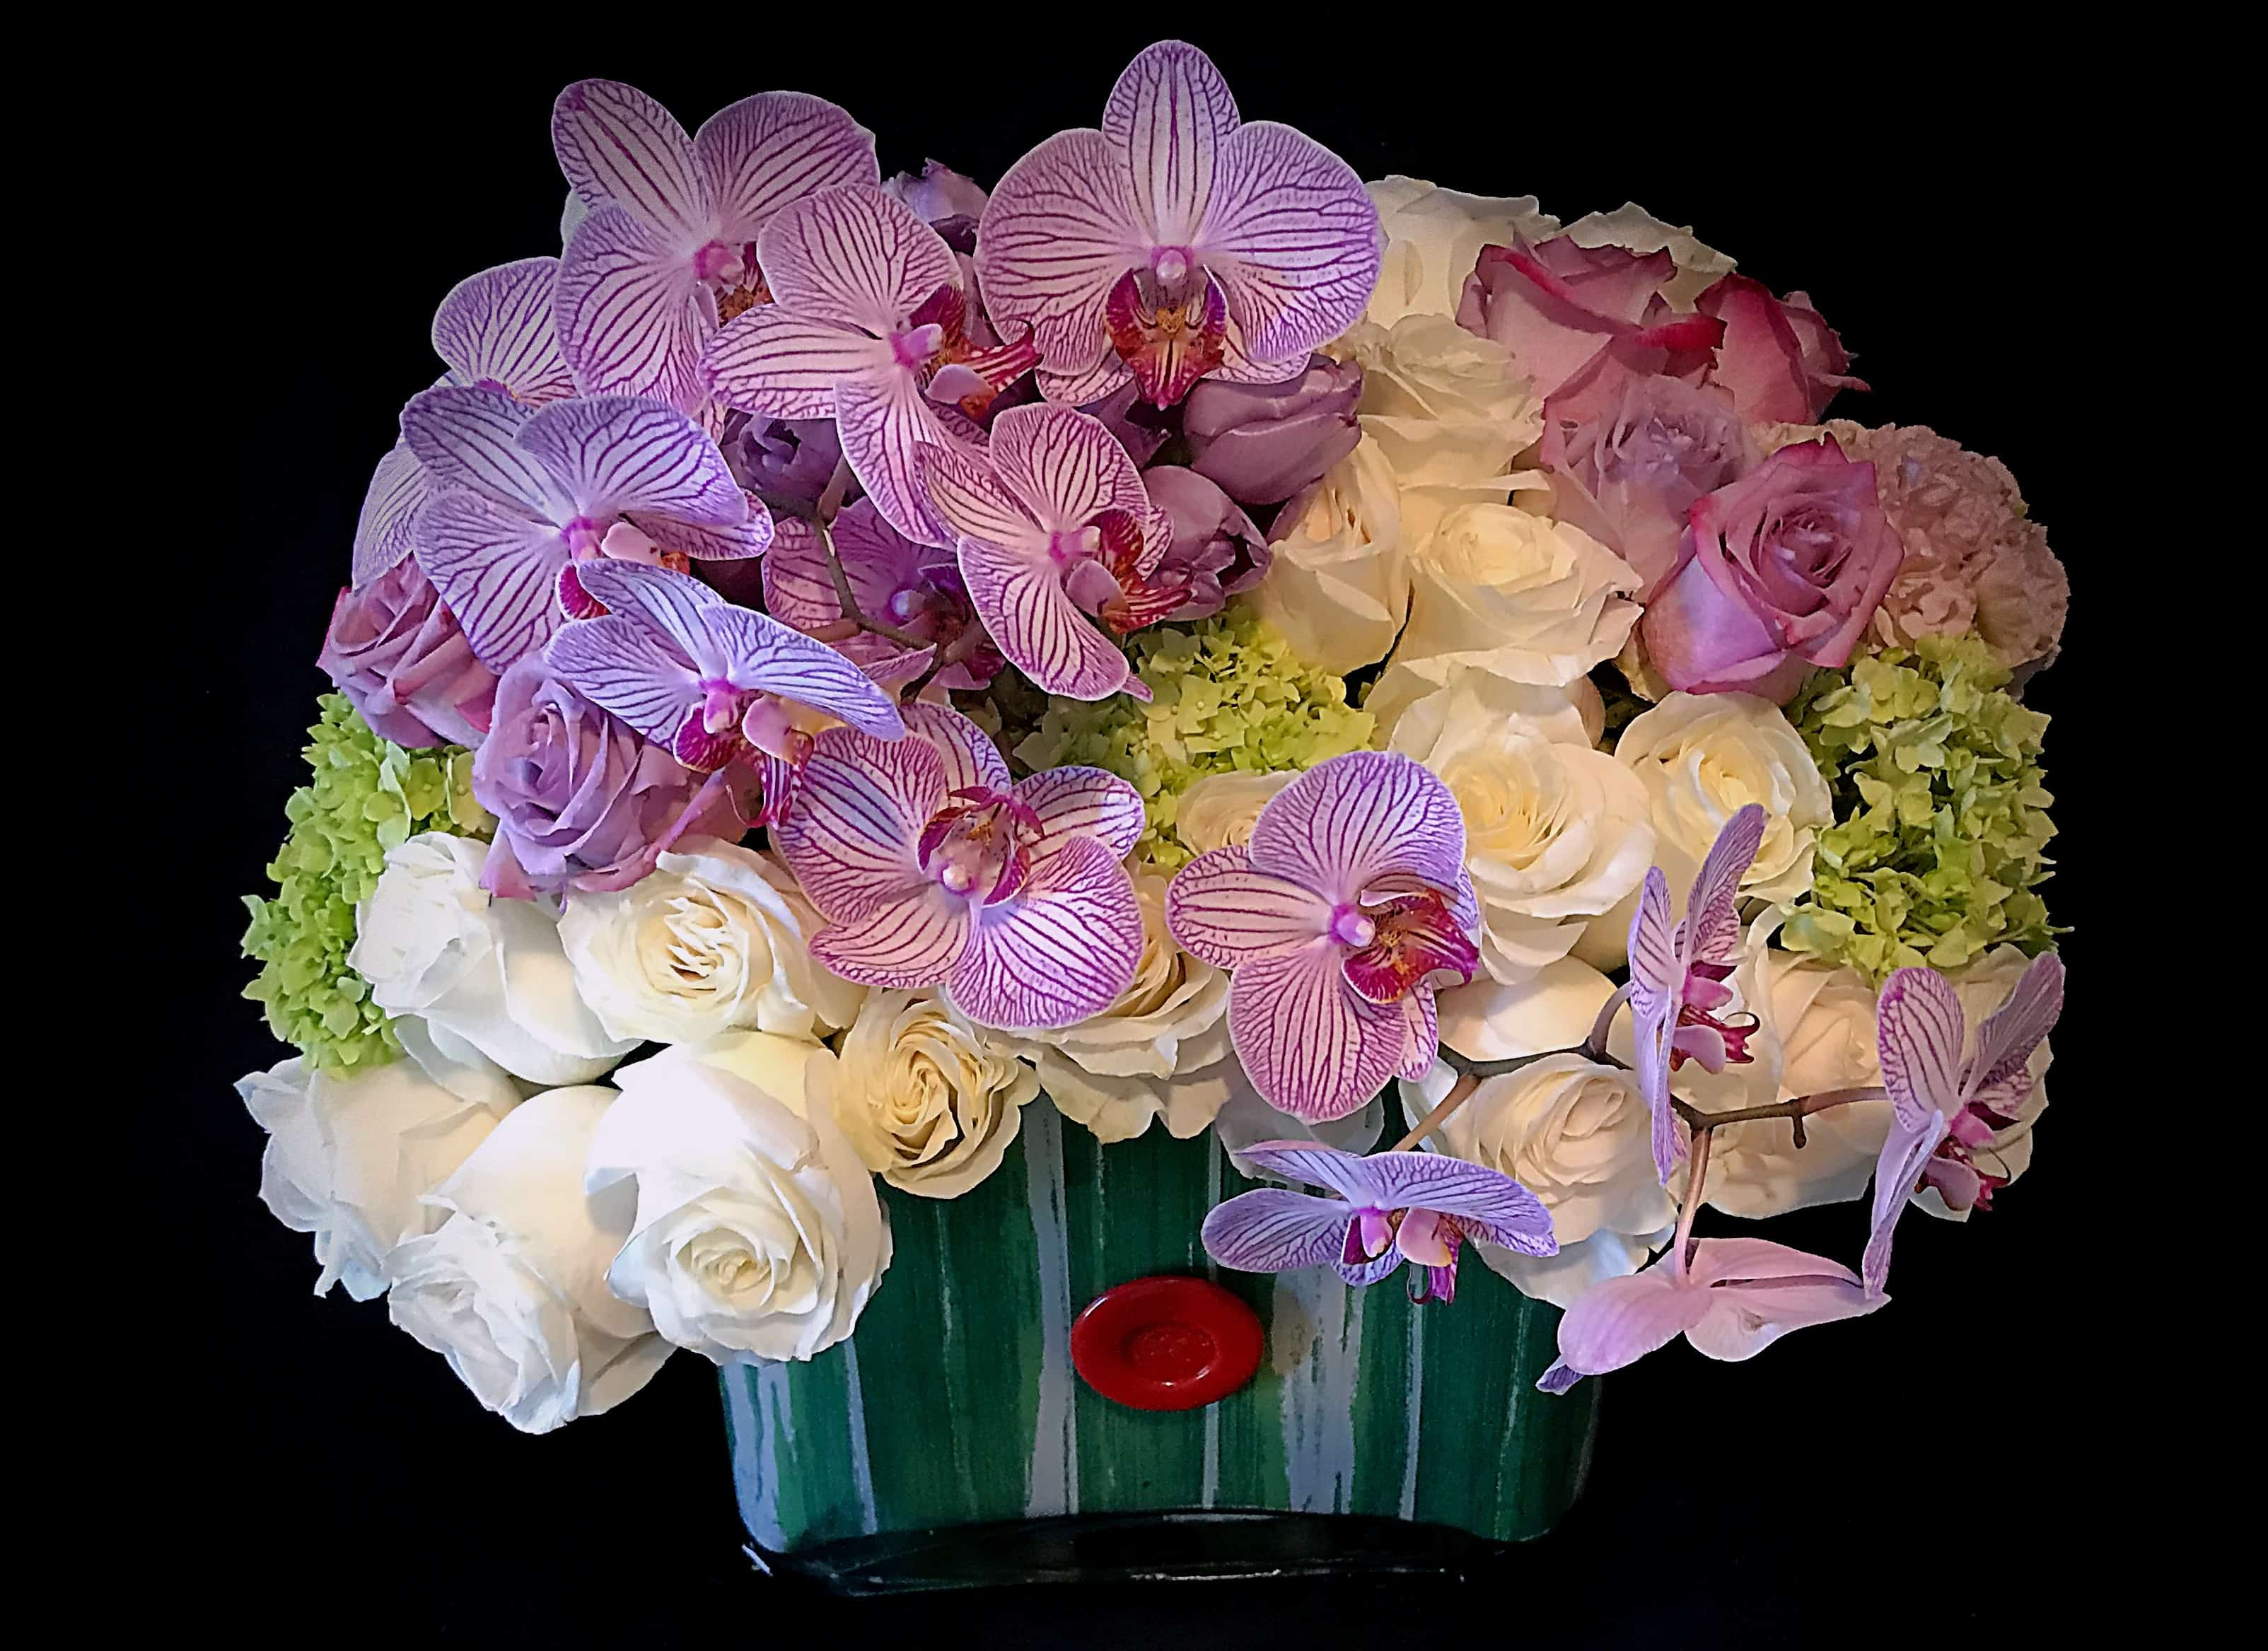 Arrangement of phalaenopsis orchids, green hydrangea, and lavender roses in a rectangular glass vase